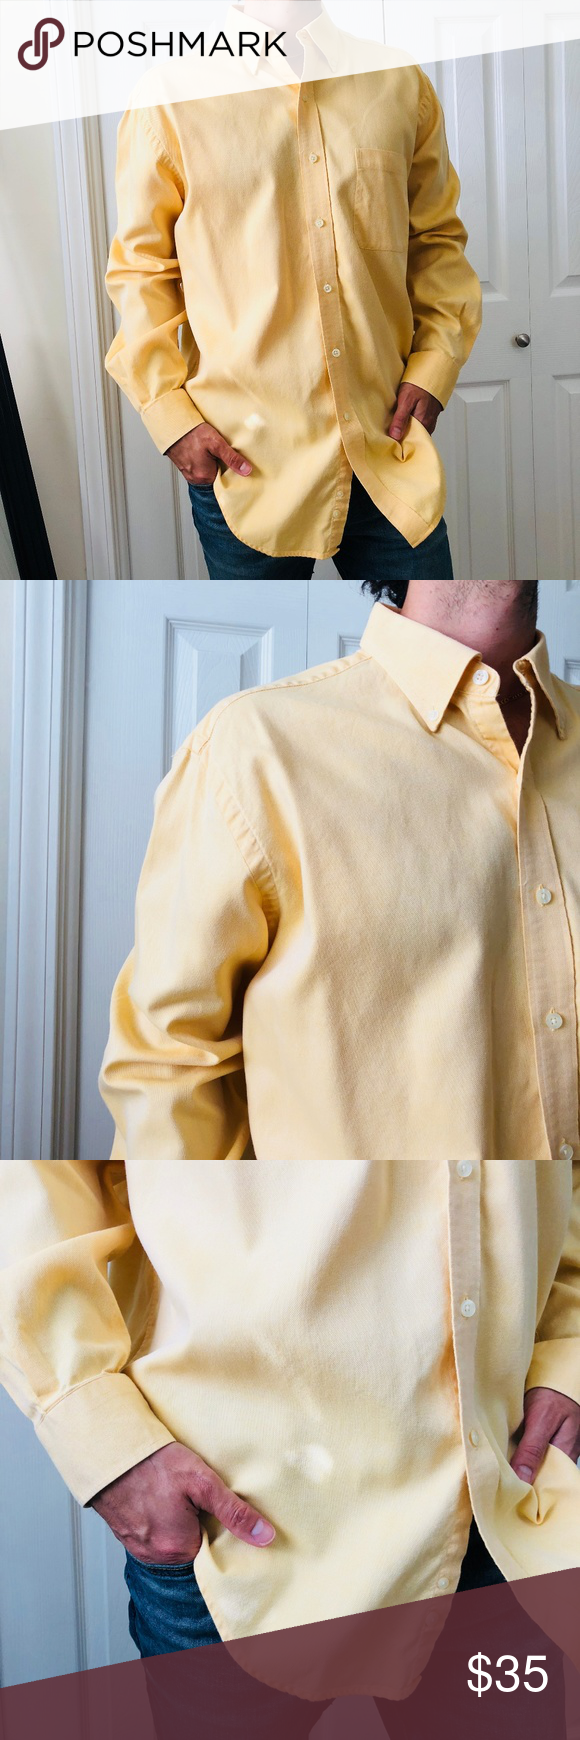 Austin Reed Regent Street Oxford Button Down L Casual Long Sleeve Shirts Clothes Design Casual Shirts